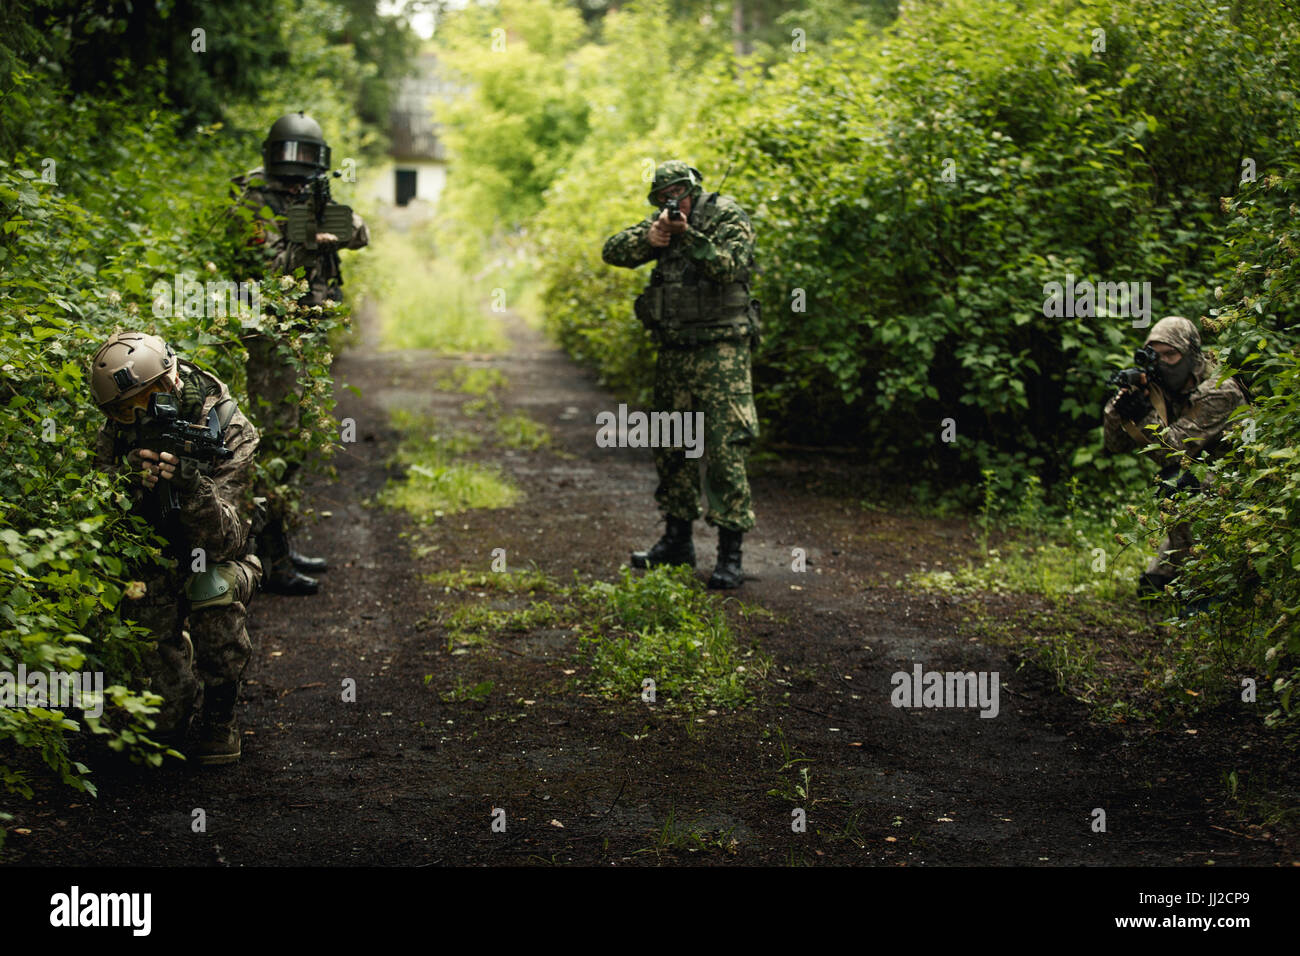 Photo of soldiers in woods - Stock Image